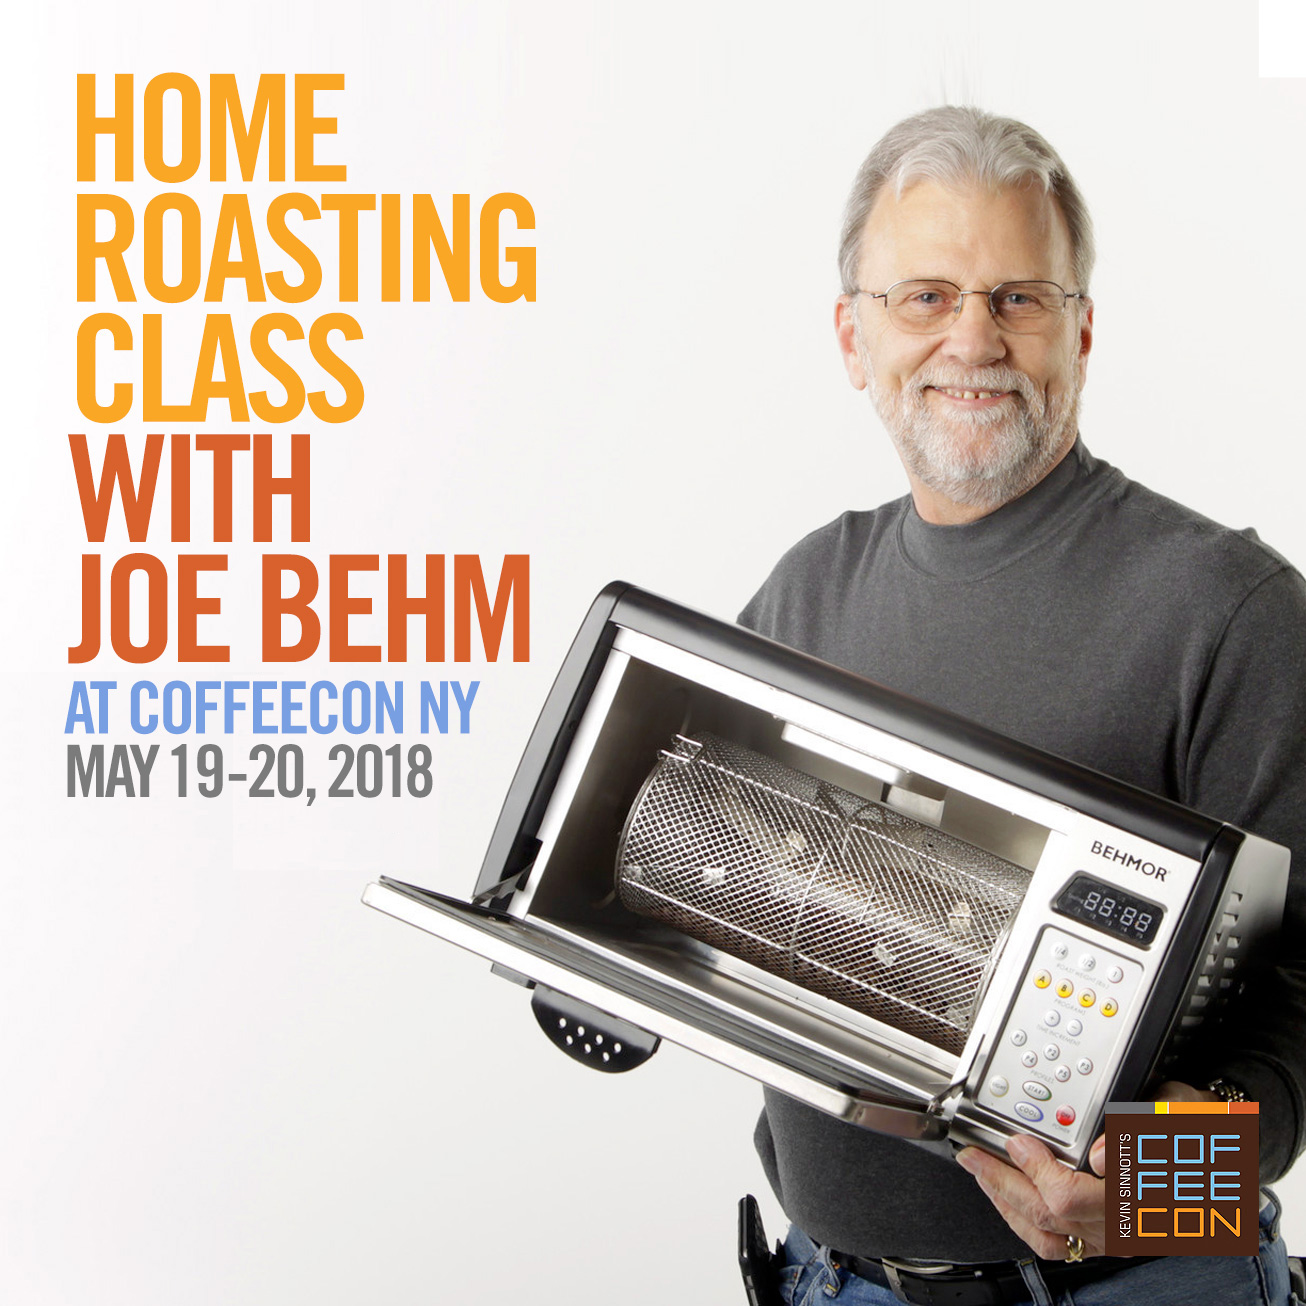 Home Roasting with Joe Behm